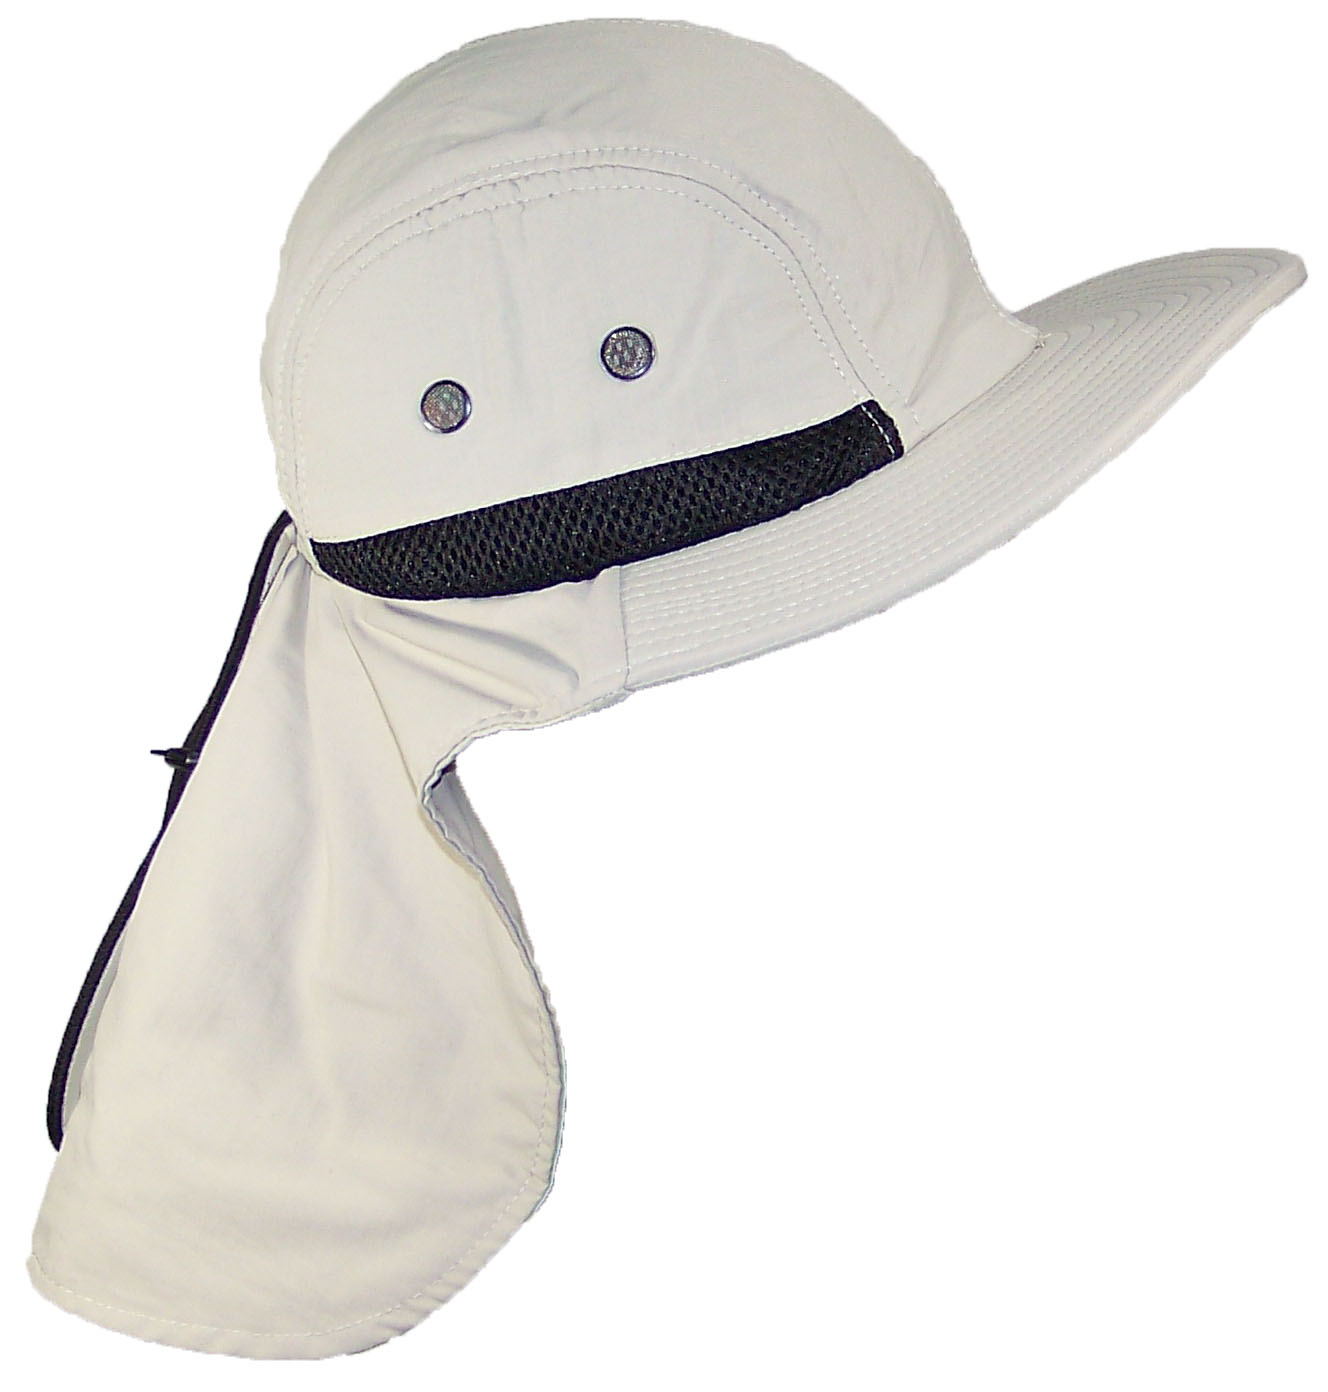 4505a4fe Magracy Mens Outdoor Wide Brim Sun Hat with Neck Flap Mesh UV Protection  Fishing Hats